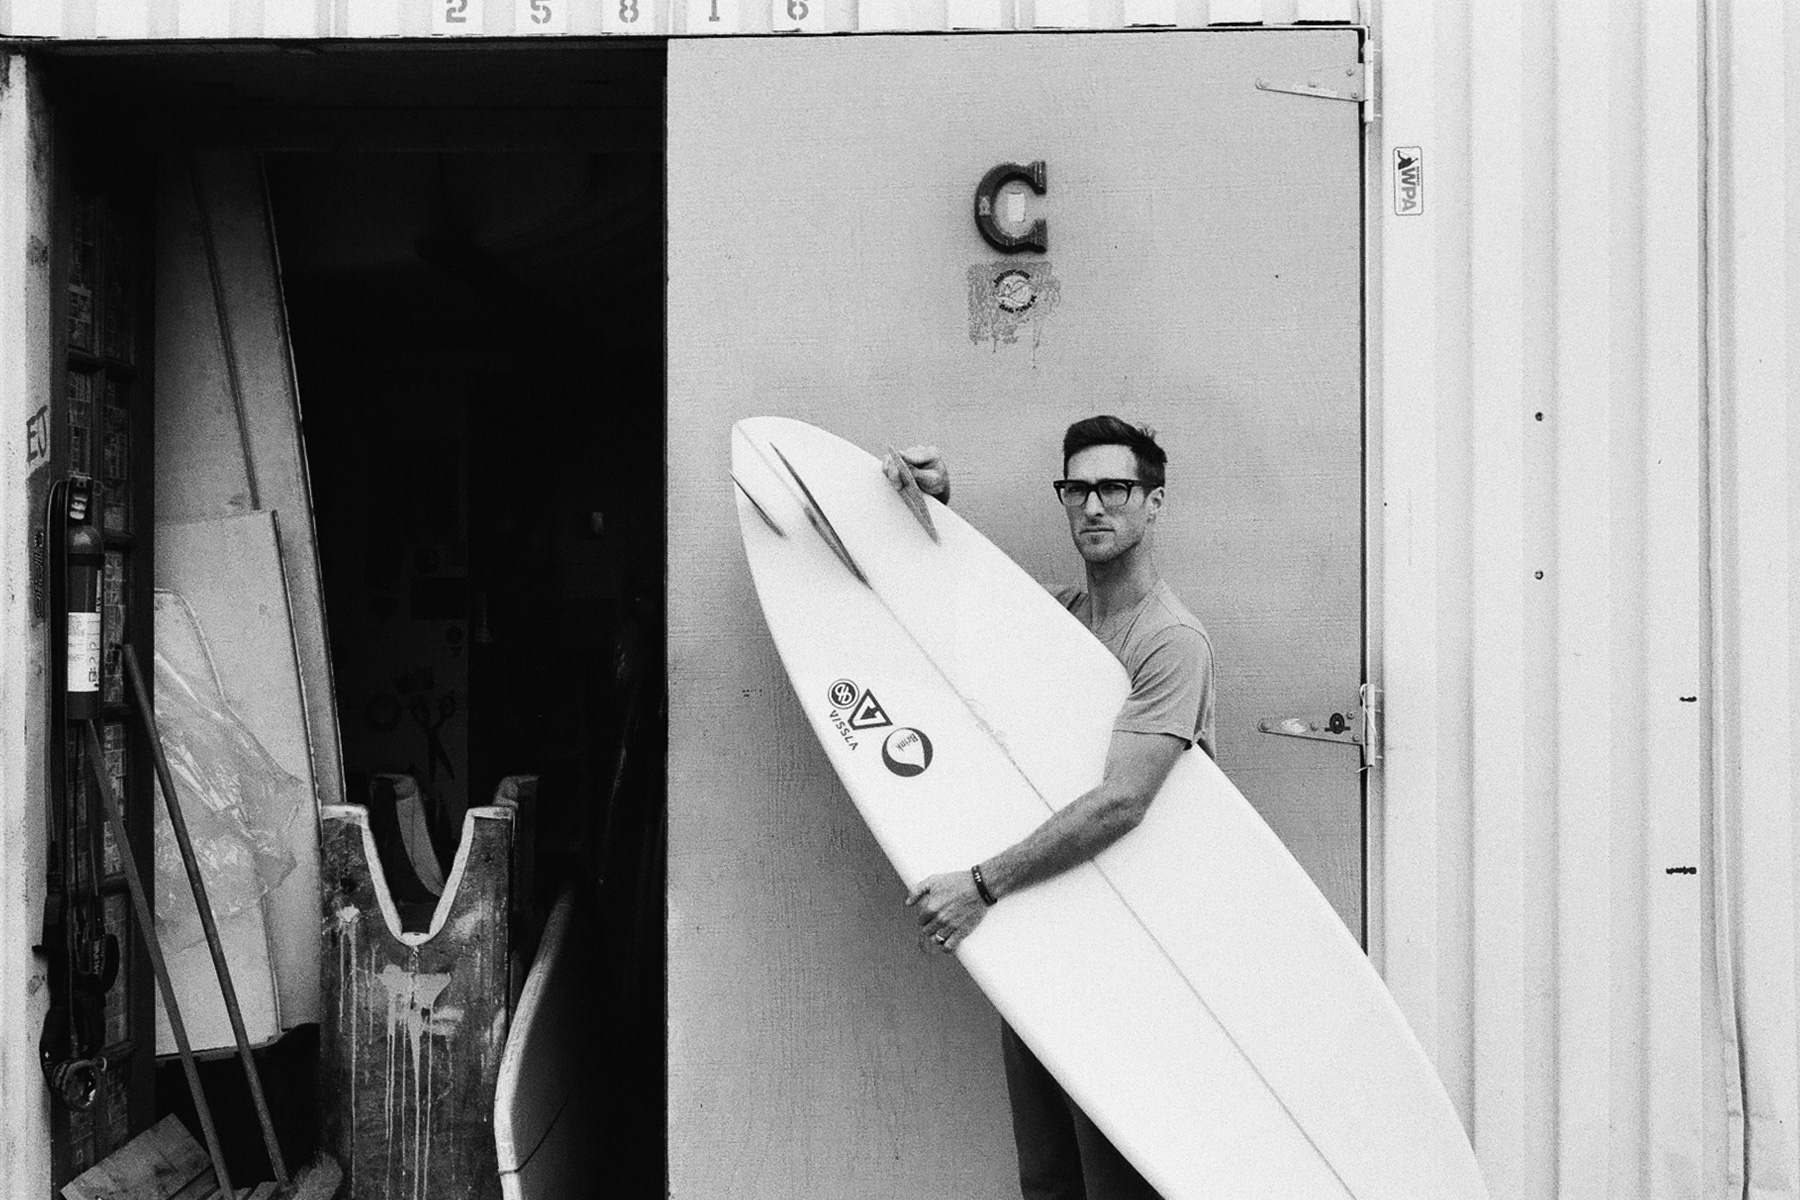 surfboard shaper donald brink outside his factory holding an asymmetrical surfboard